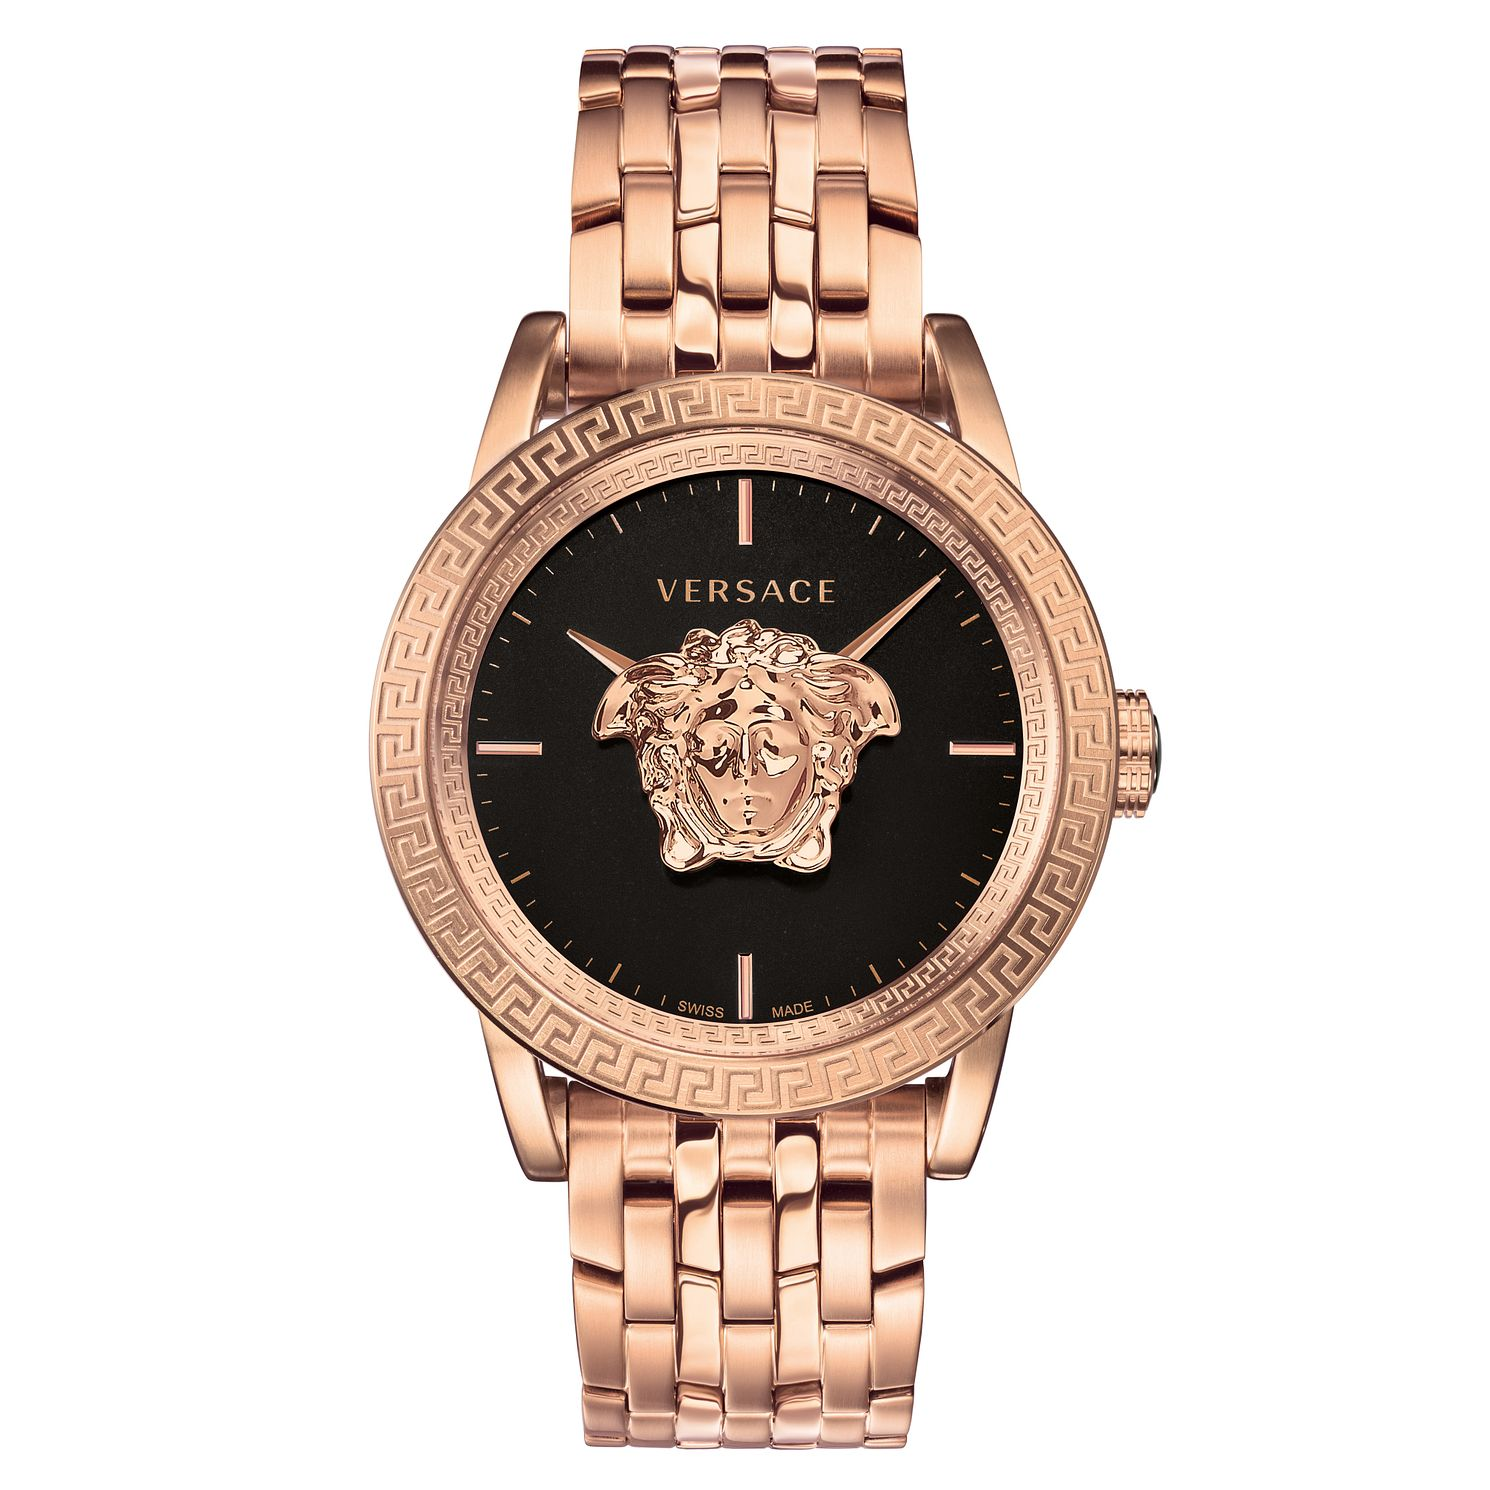 Versace Palazzo Empire Men's Rose Gold Plated Bracelet Watch - Product number 2951762